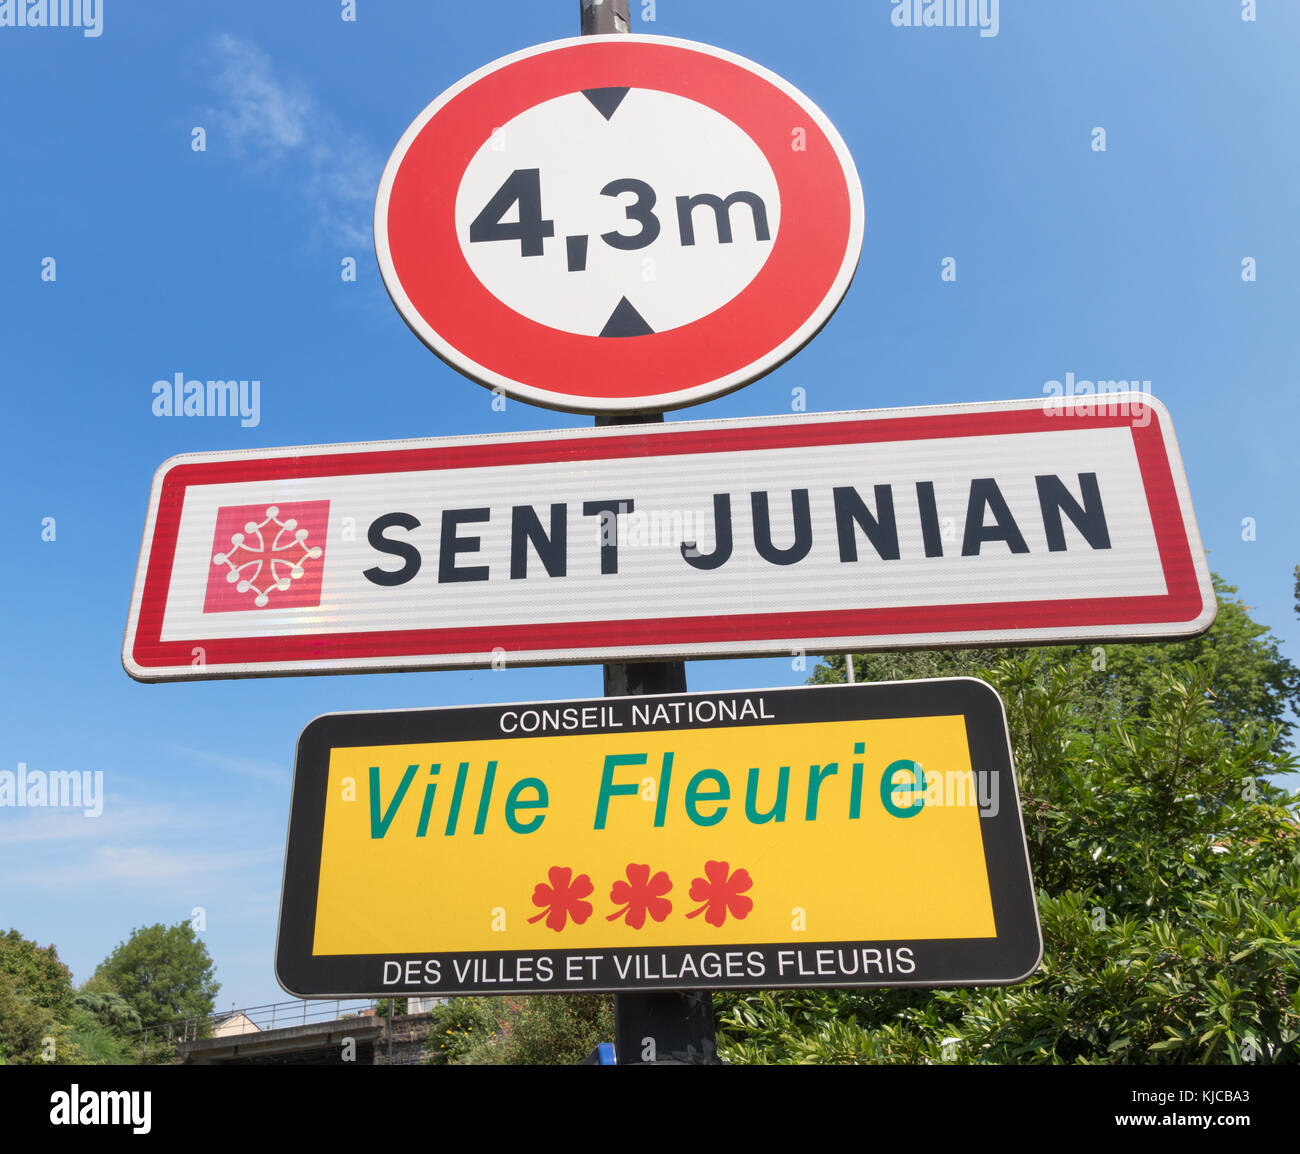 Town sign for Saint Junien (Sent Junian in Occitan) with Ville Fleurie 3 flower notice, Haute-Vienne, France, Europe - Stock Image